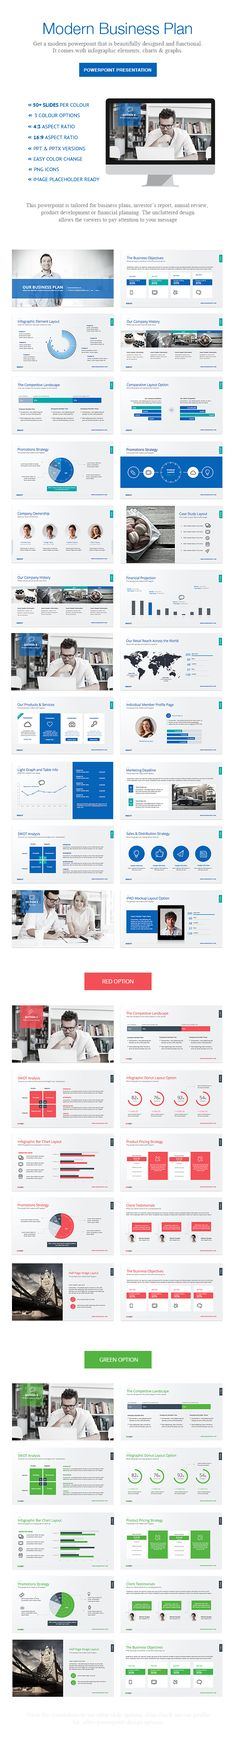 Idea para presentaciones de productos, servicios, planes, ideal para presentaciones con diapositivas Business Plan Powerpoint by Design District, via Behance